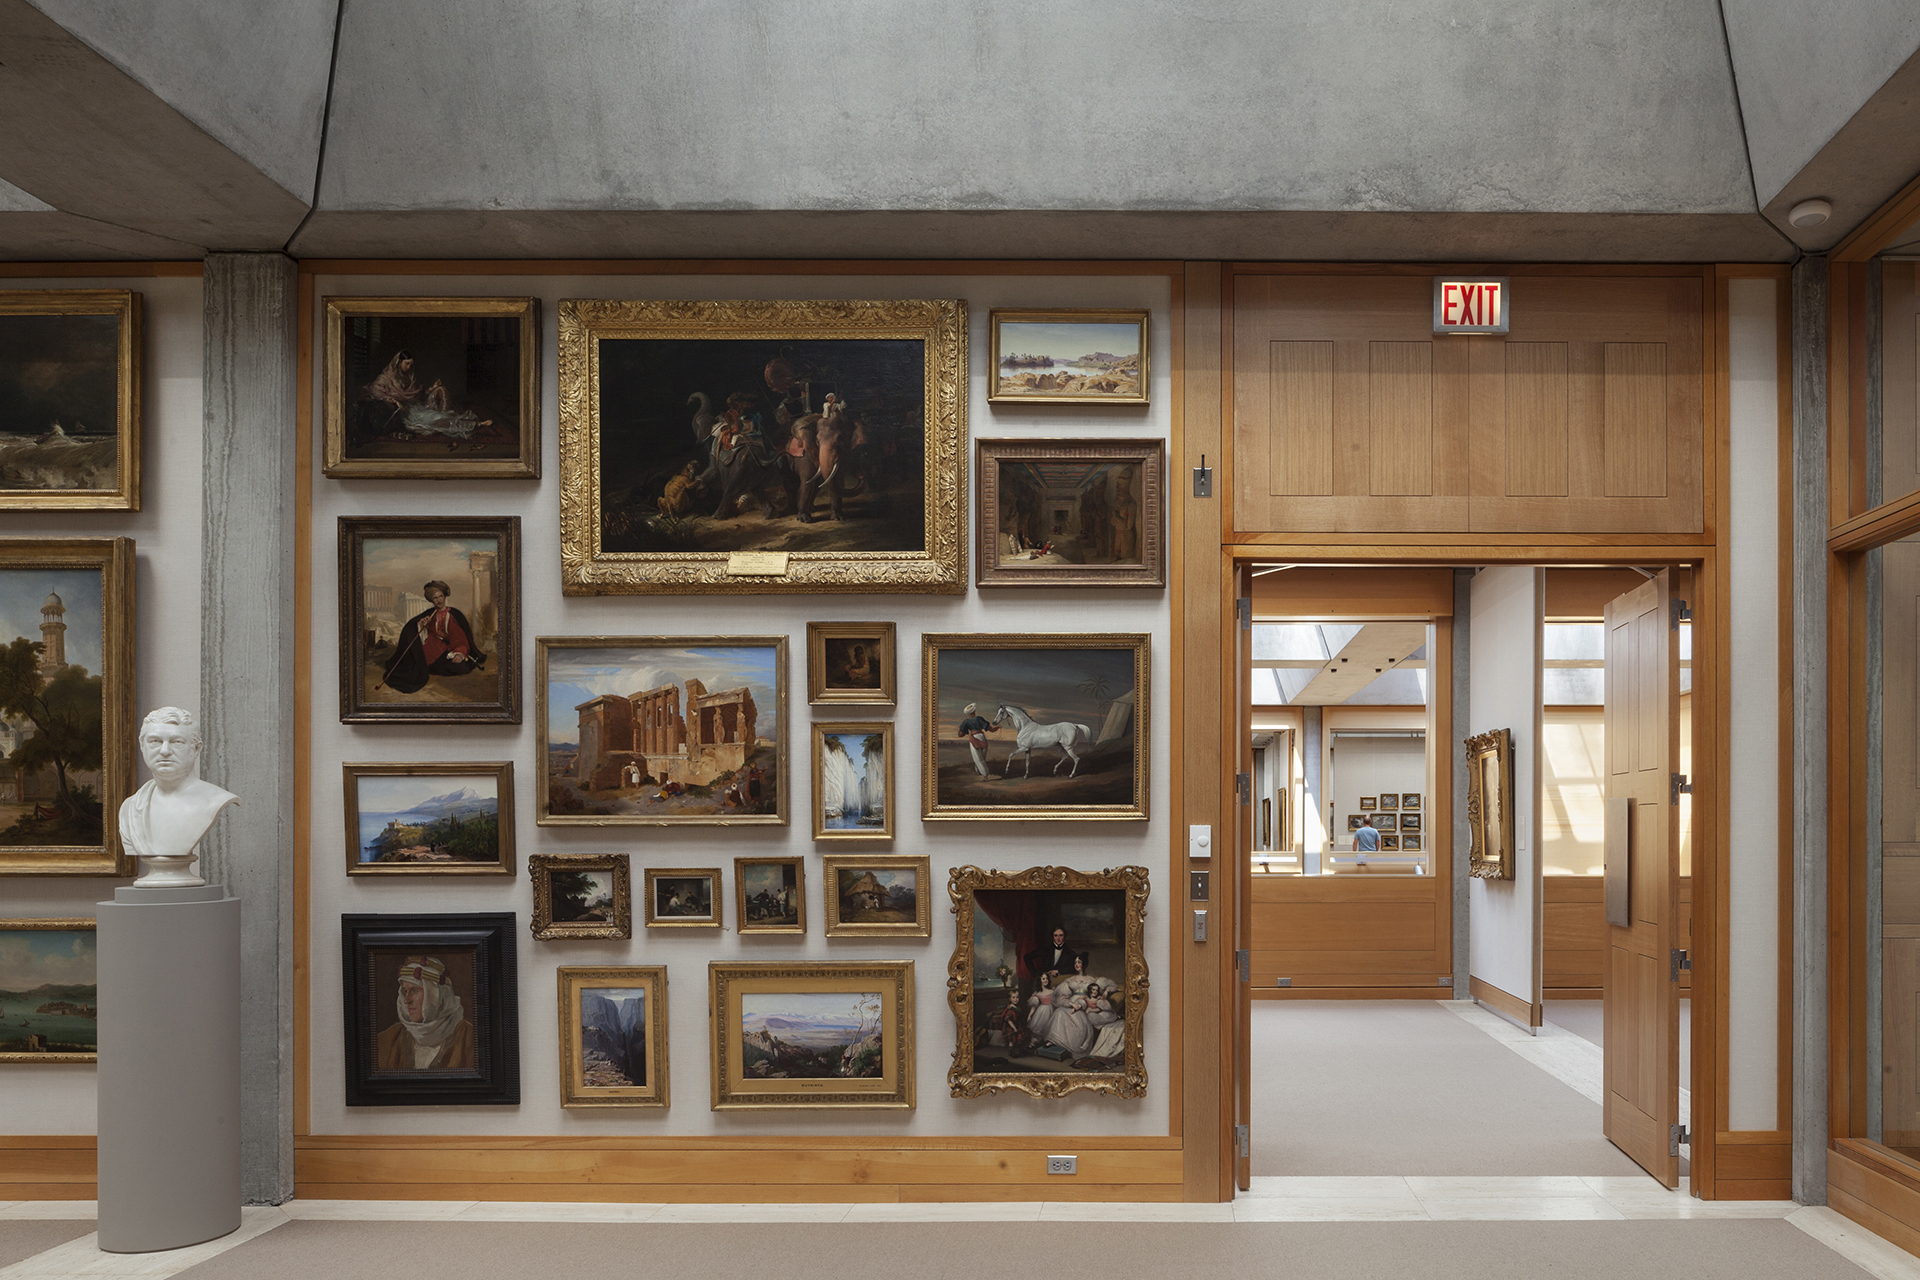 Long Gallery, Yale Center for British Art, photo by © Elizabeth Felicella / ESTO